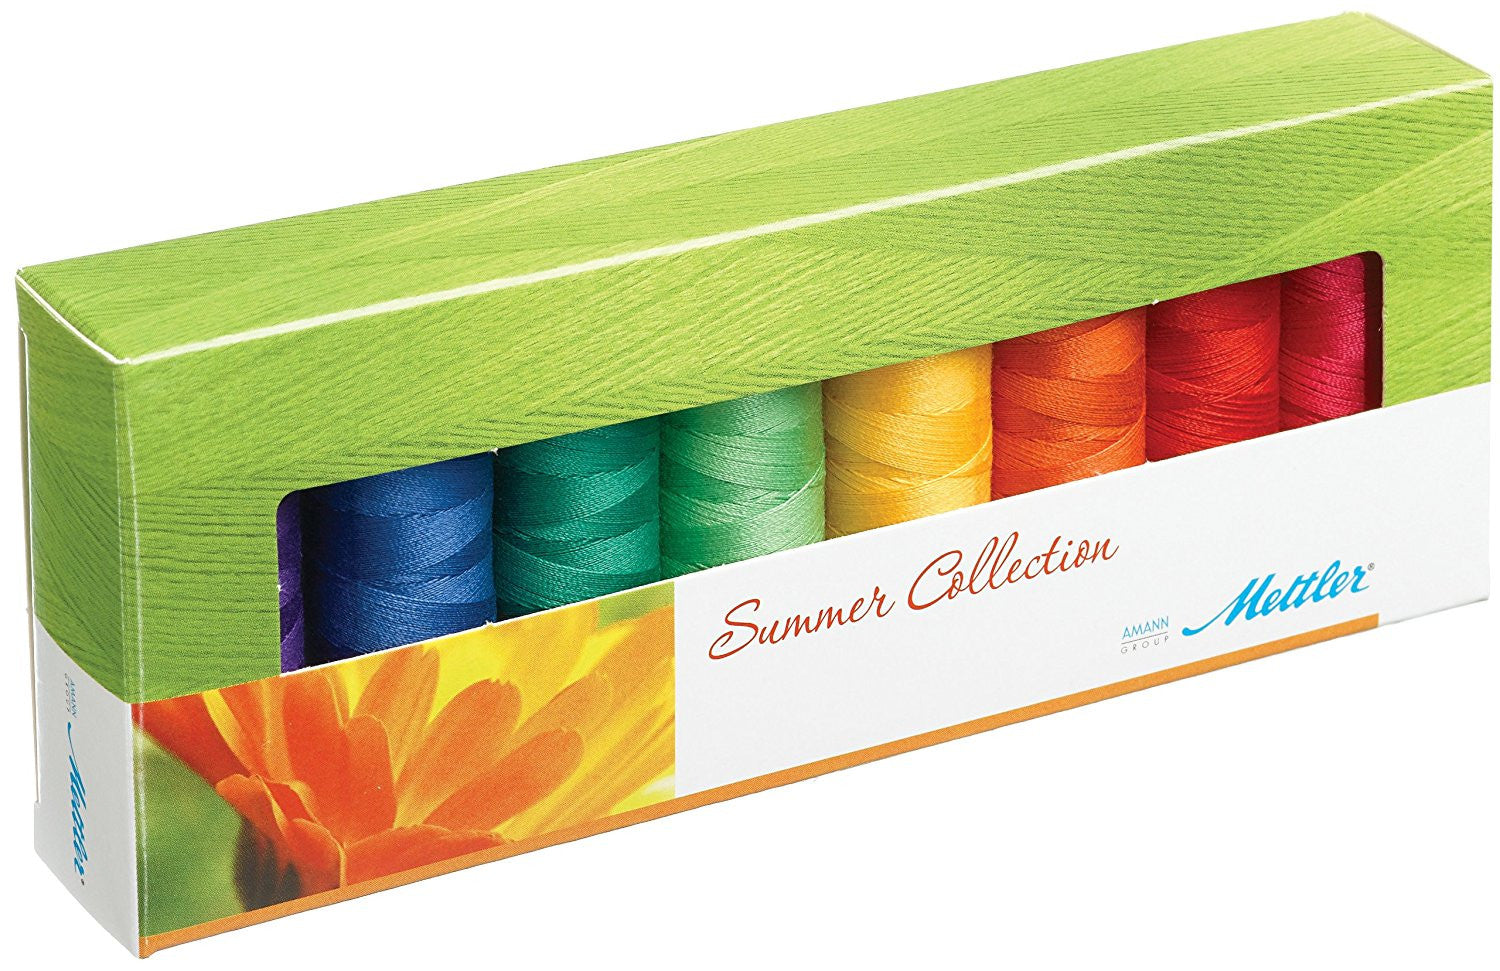 Mettler - Summer Collection Thread Set - 8 Spools / 1500yds Each